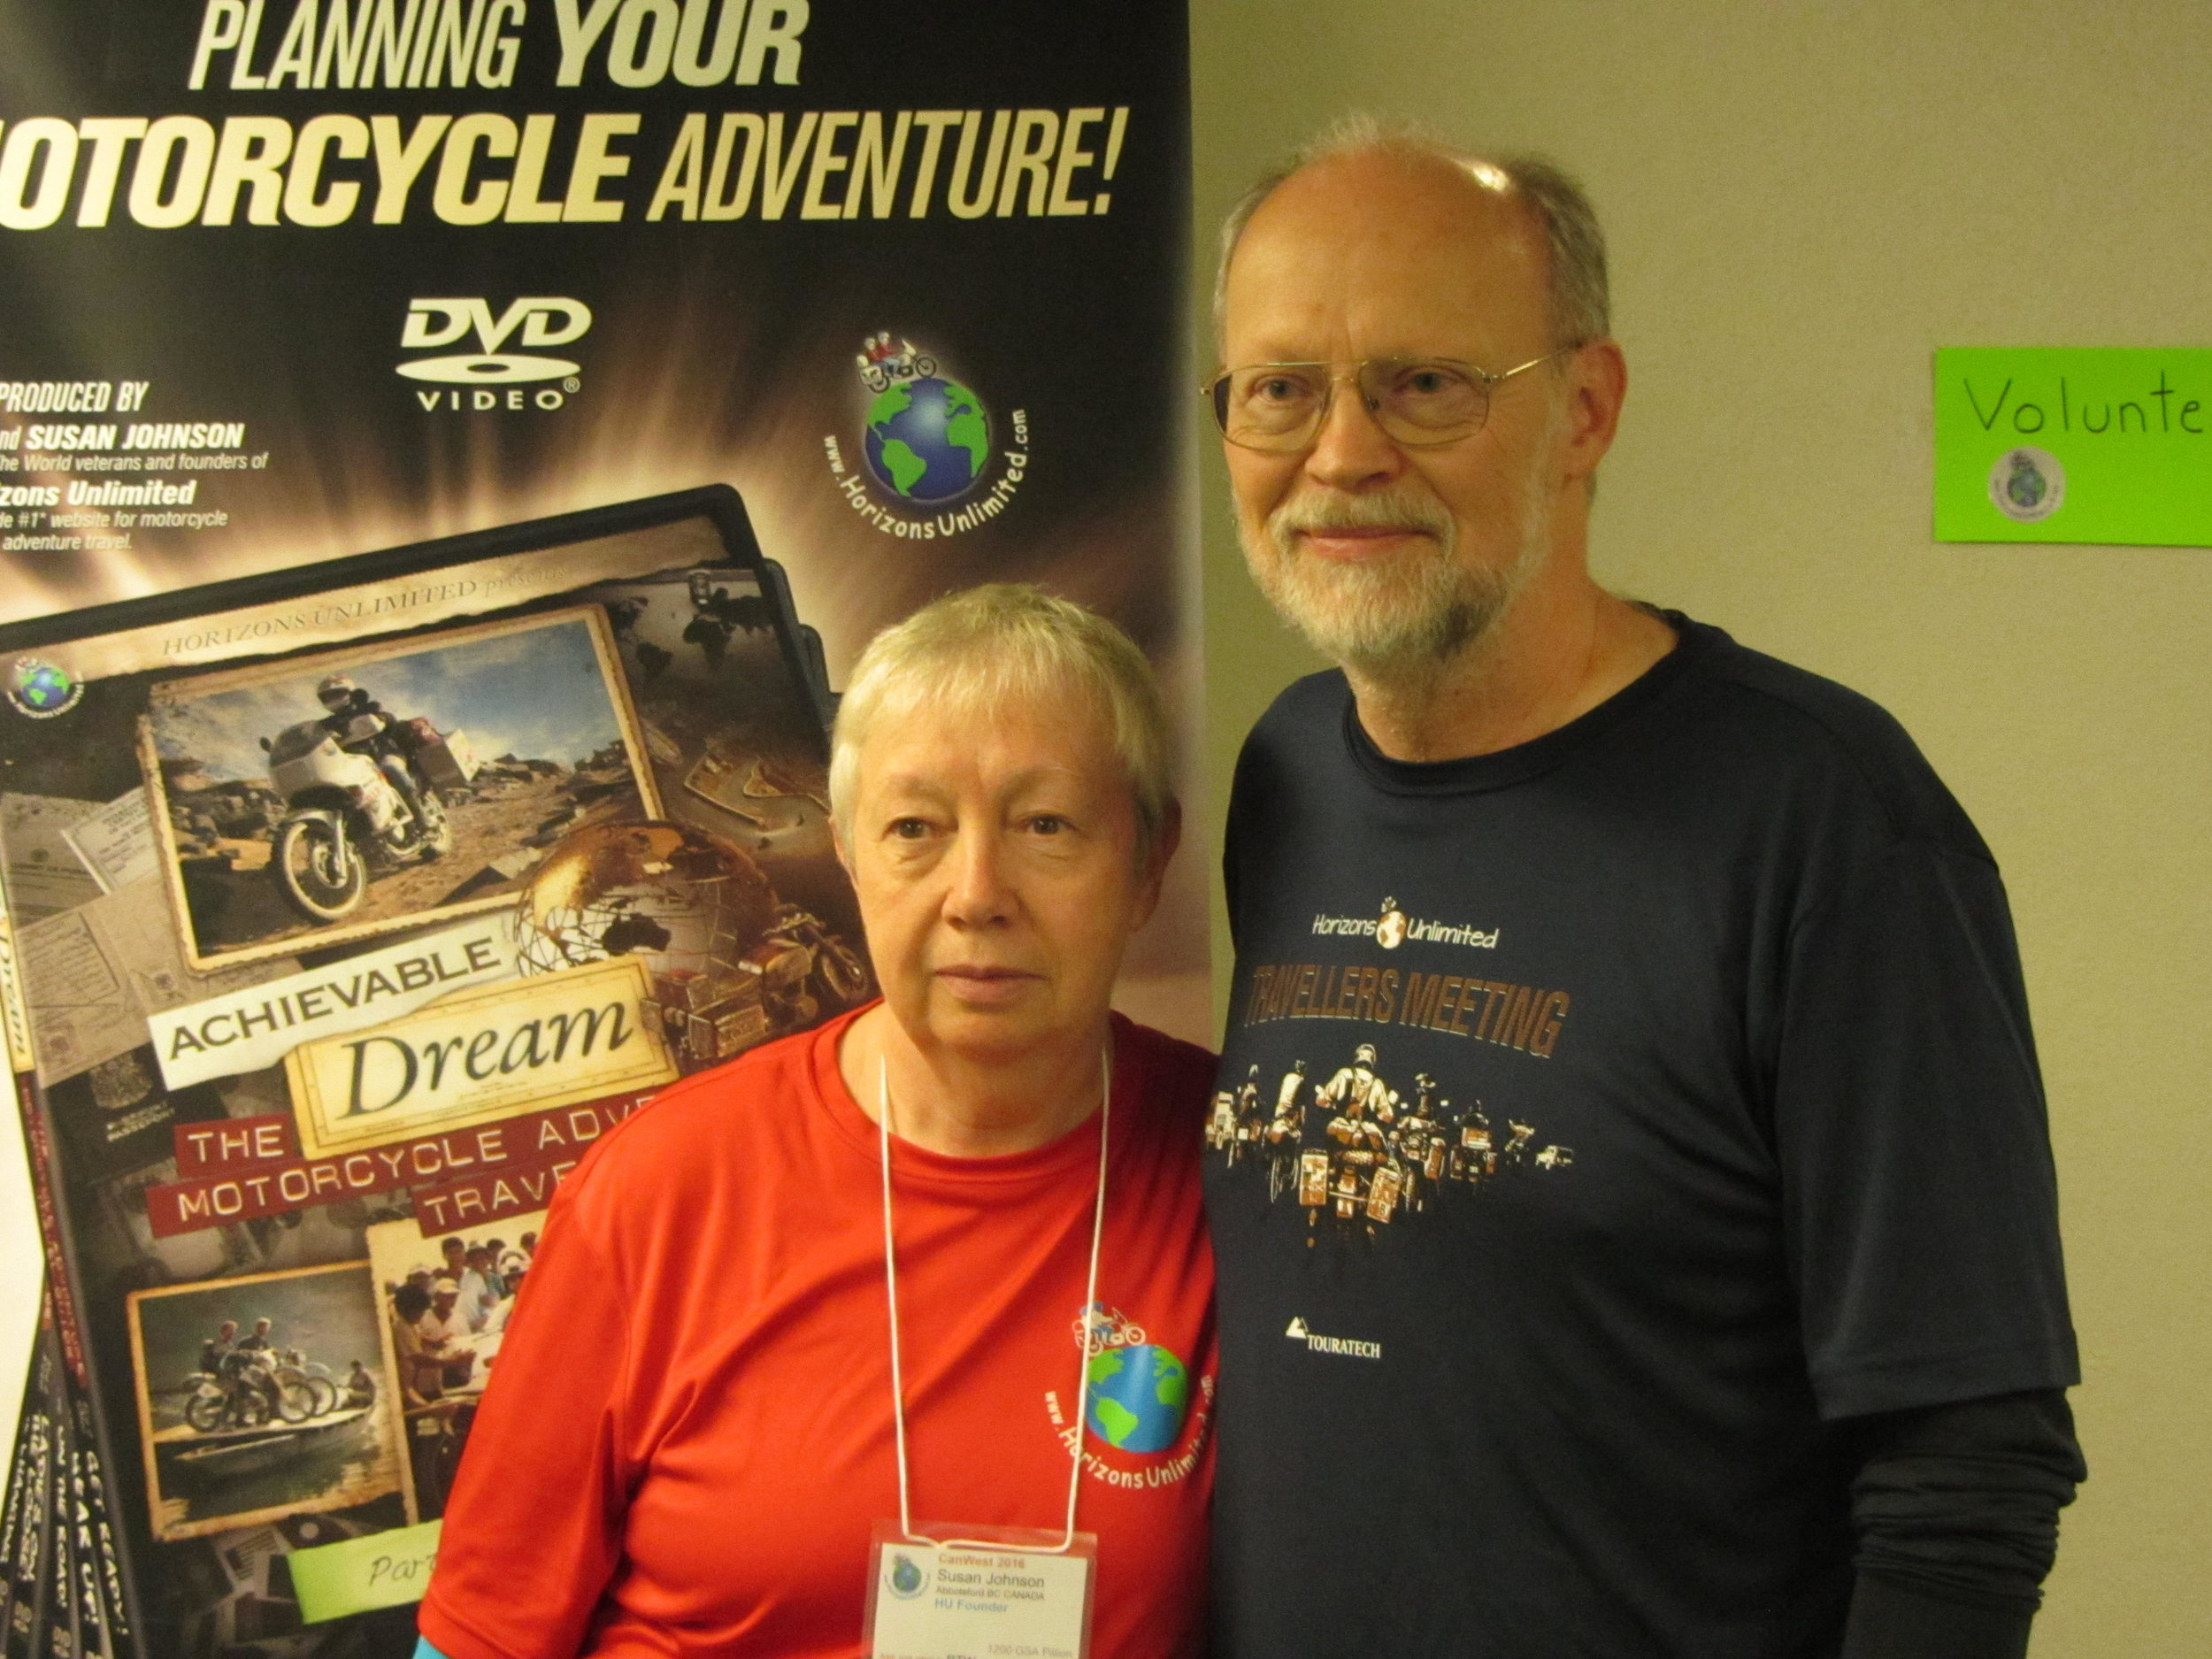 Grant & Susan Johnson - Horizons Unlimited